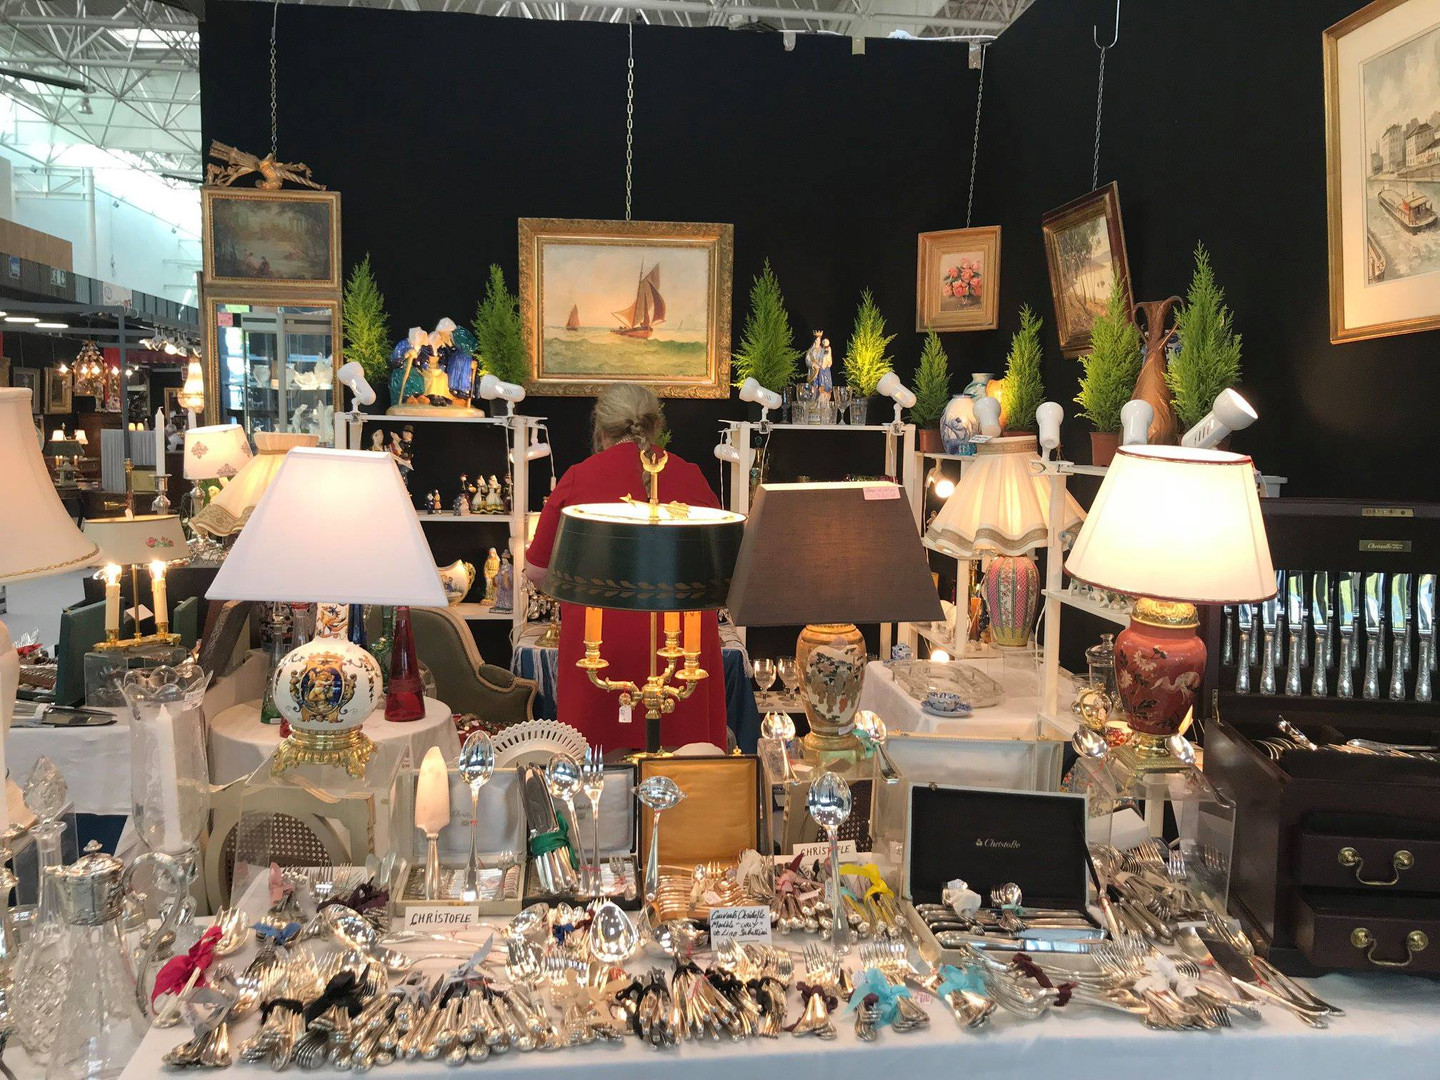 Salon_des_antiquaires_clermont_ferrand_3